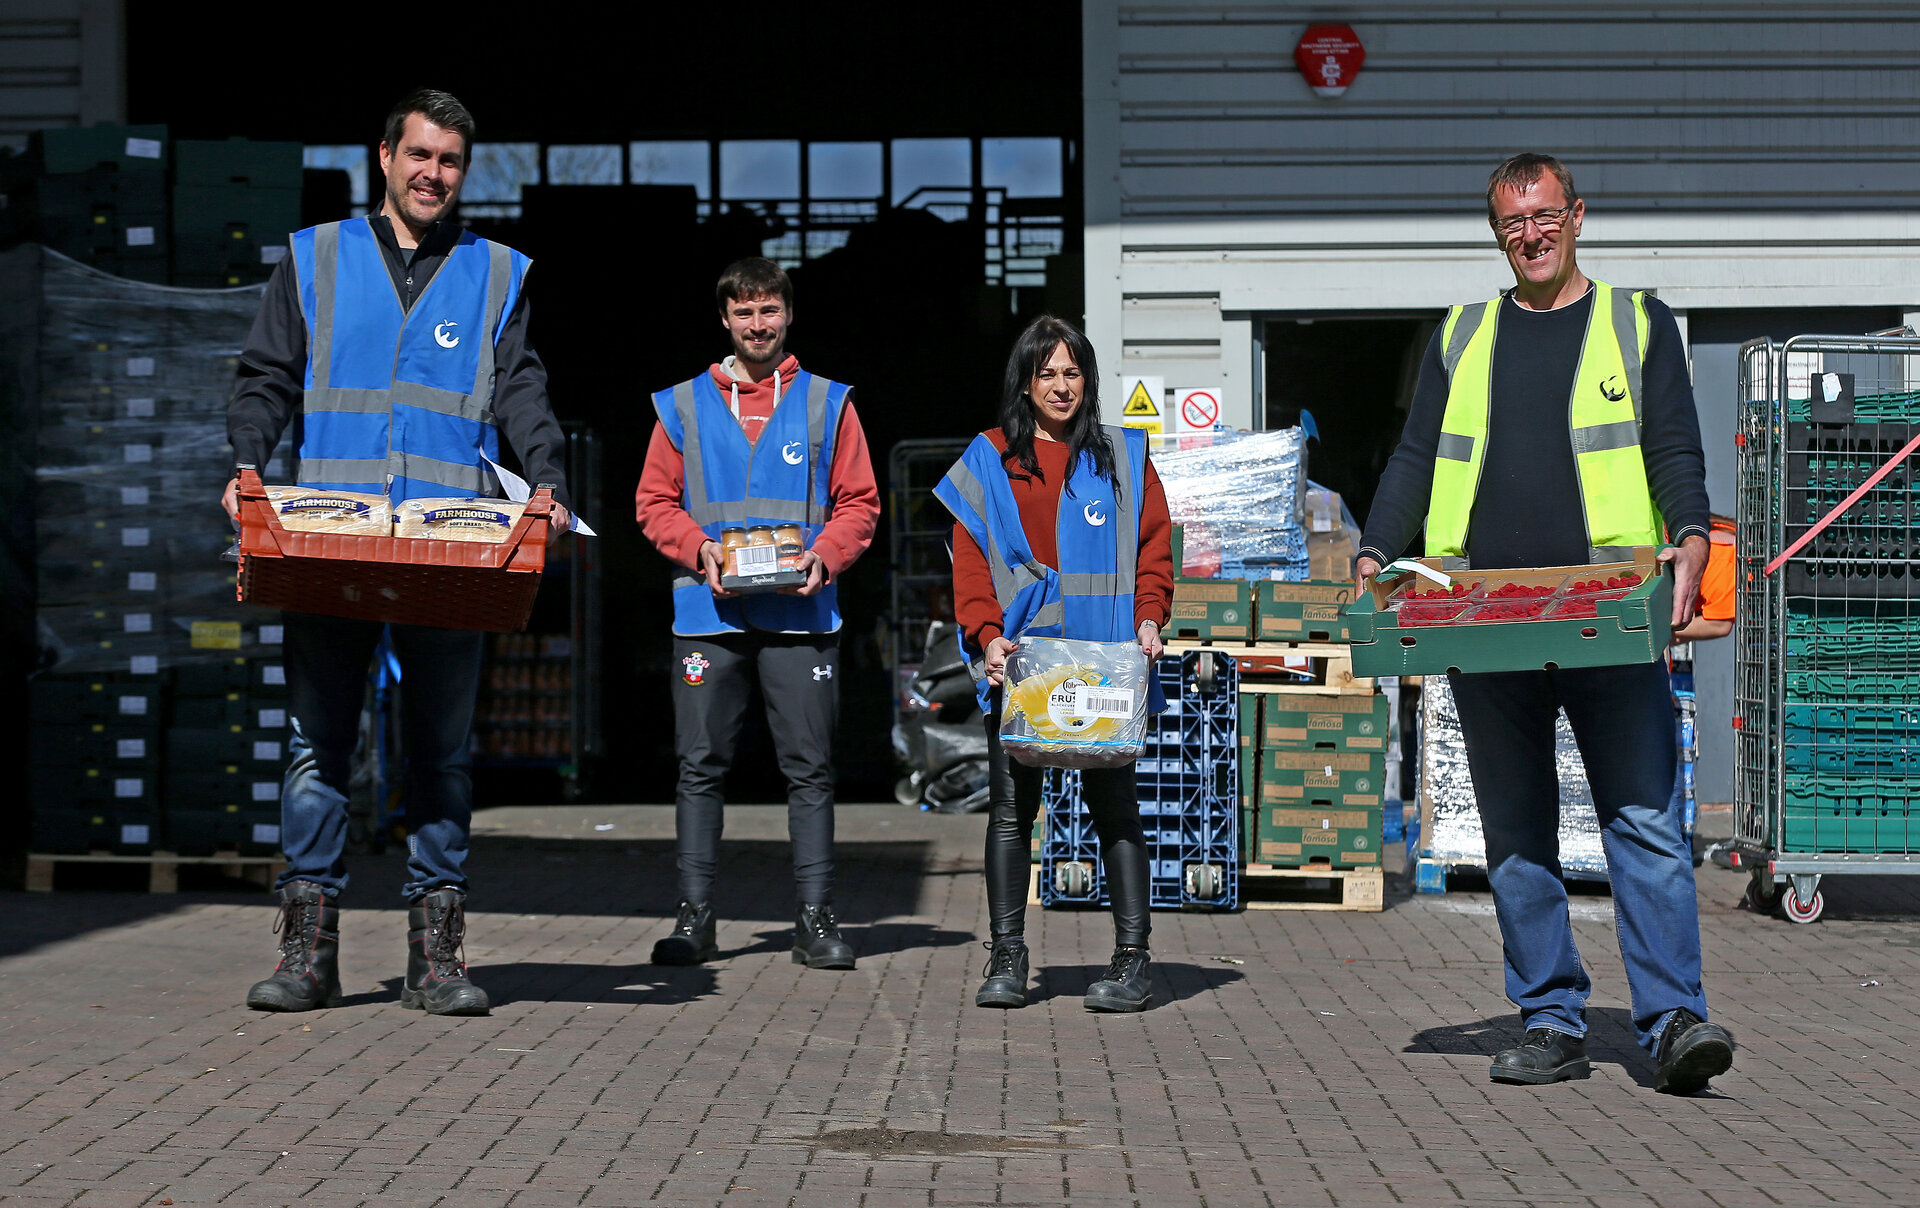 SOUTHAMPTON, ENGLAND - APRIL 06: Former Southampton FC player and current club ambassador Matt Le Tissier(R) volunteers along with Saints foundation staff, at local food distribution centre FareShare, on April 06, 2020 in Southampton, England. (Photo by Matt Watson/Southampton FC via Getty Images)